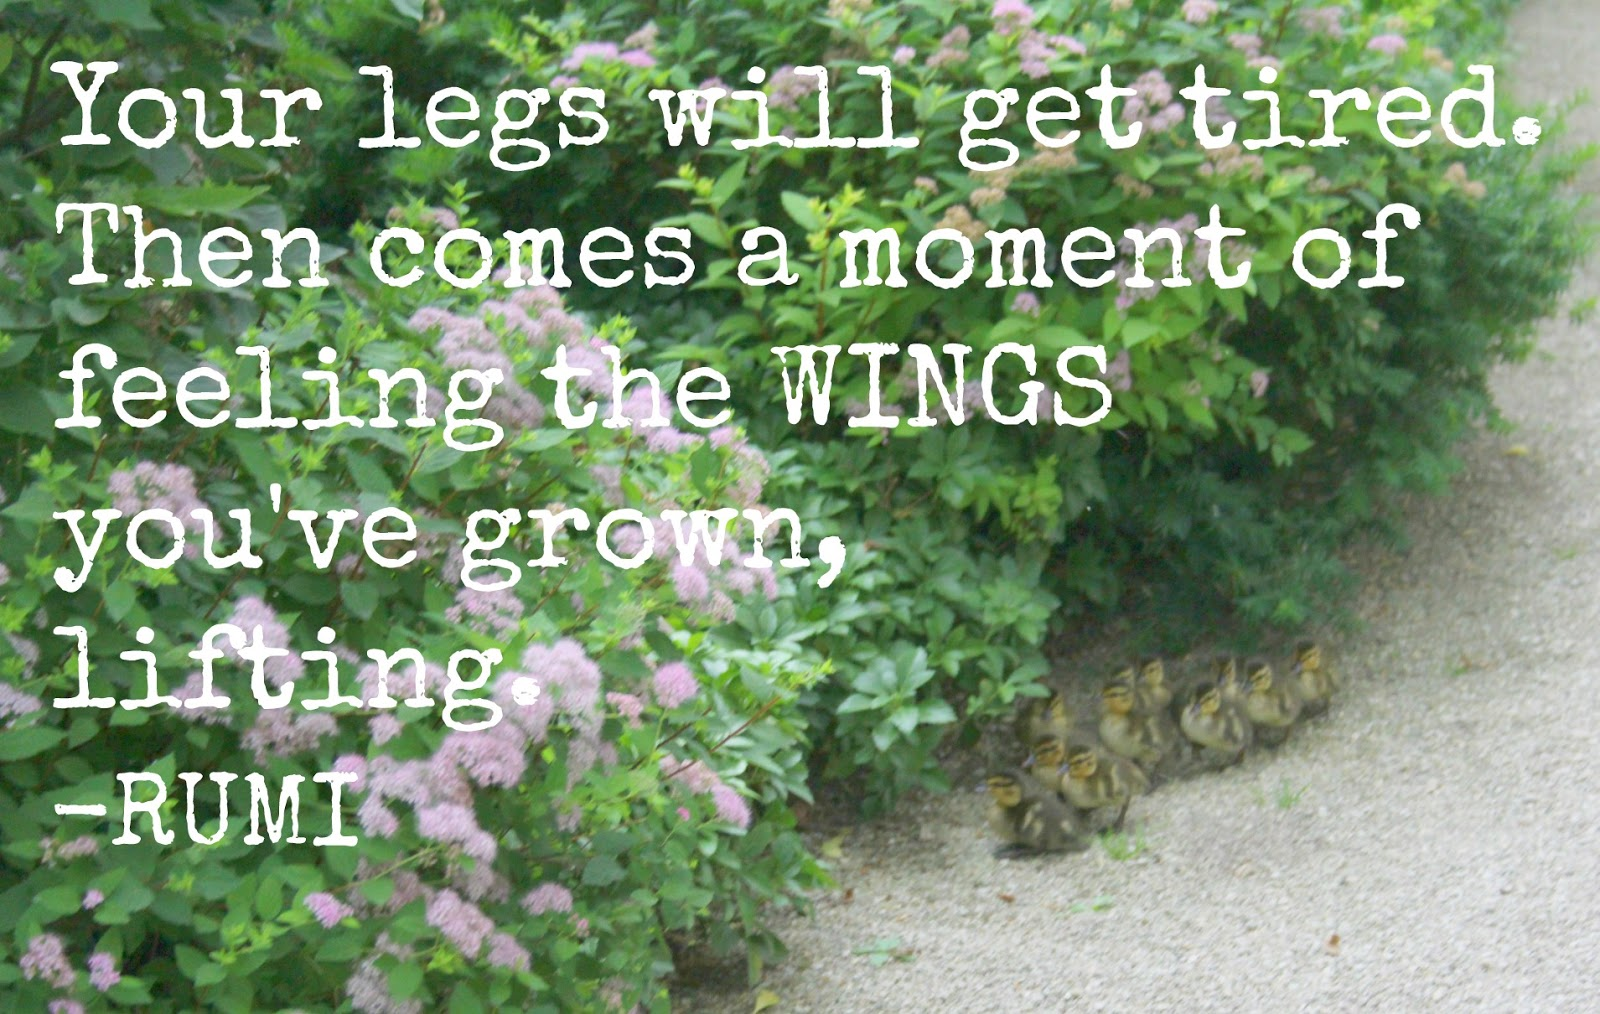 Photo of ducklings at a Japanese garden by Hello Lovely Studio and quote by Rumi. Your legs will get tired - then comes a moment of feeling the wings you've grown, lifting. #rumi #encouragement #hellolovelystudio #ducklings